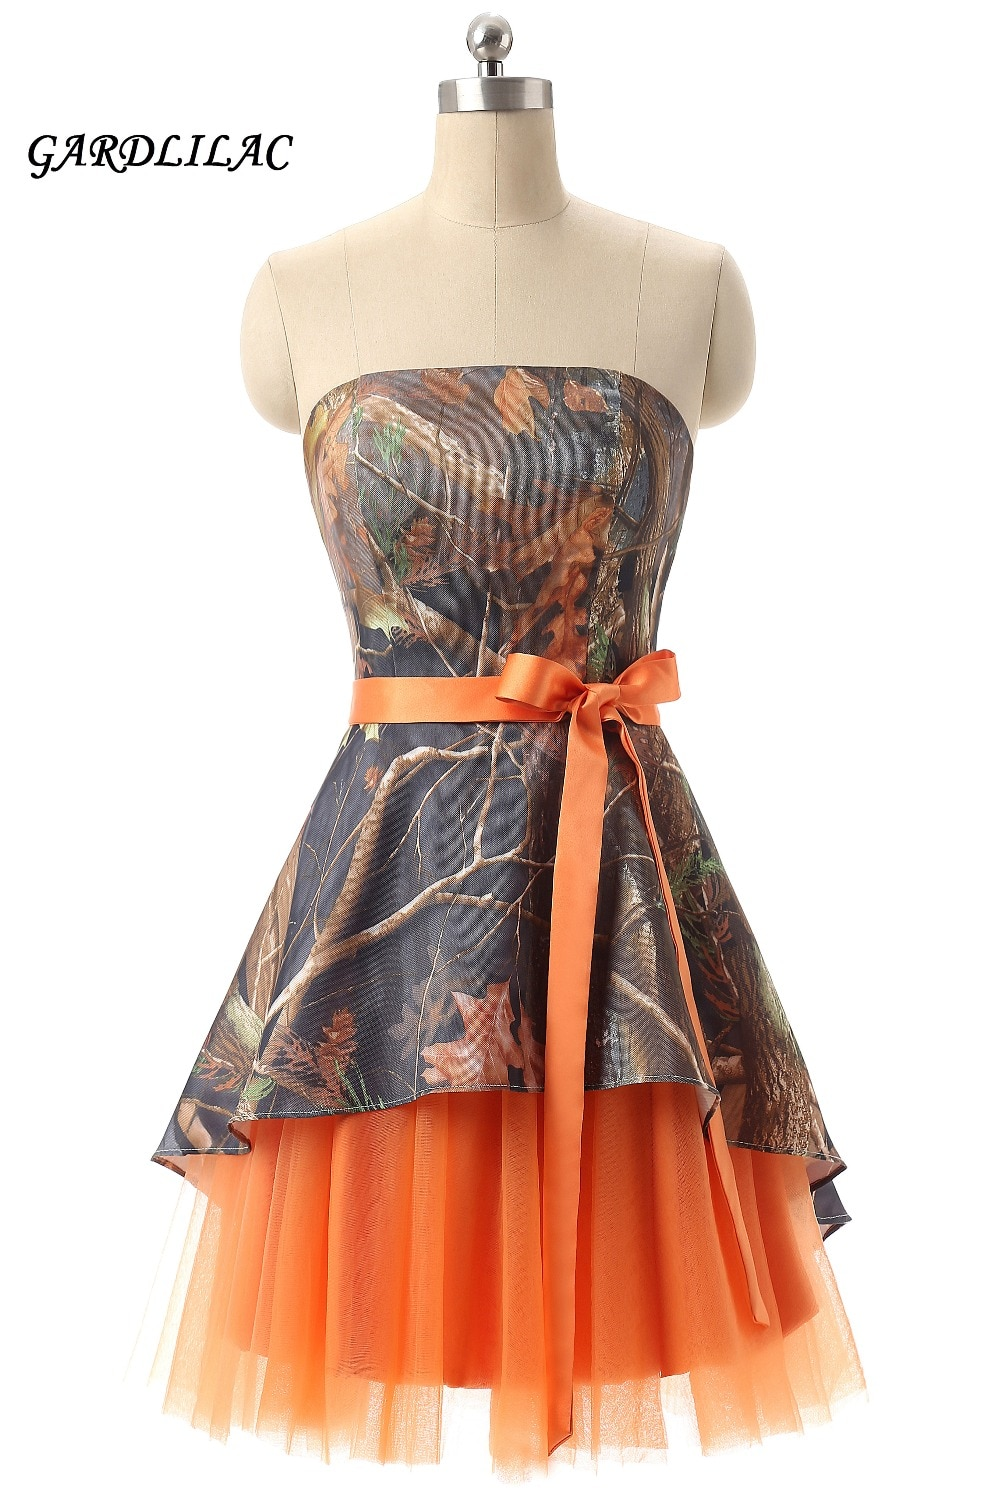 maid of honor dresses for weddings bridesmaid party dresses for women long prom dress graduation dresses back of bandage a line Orange Camouflage Bridesmaid Dresses Plus Size Wedding Party Gown Maid of Honor Camo Prom Dress